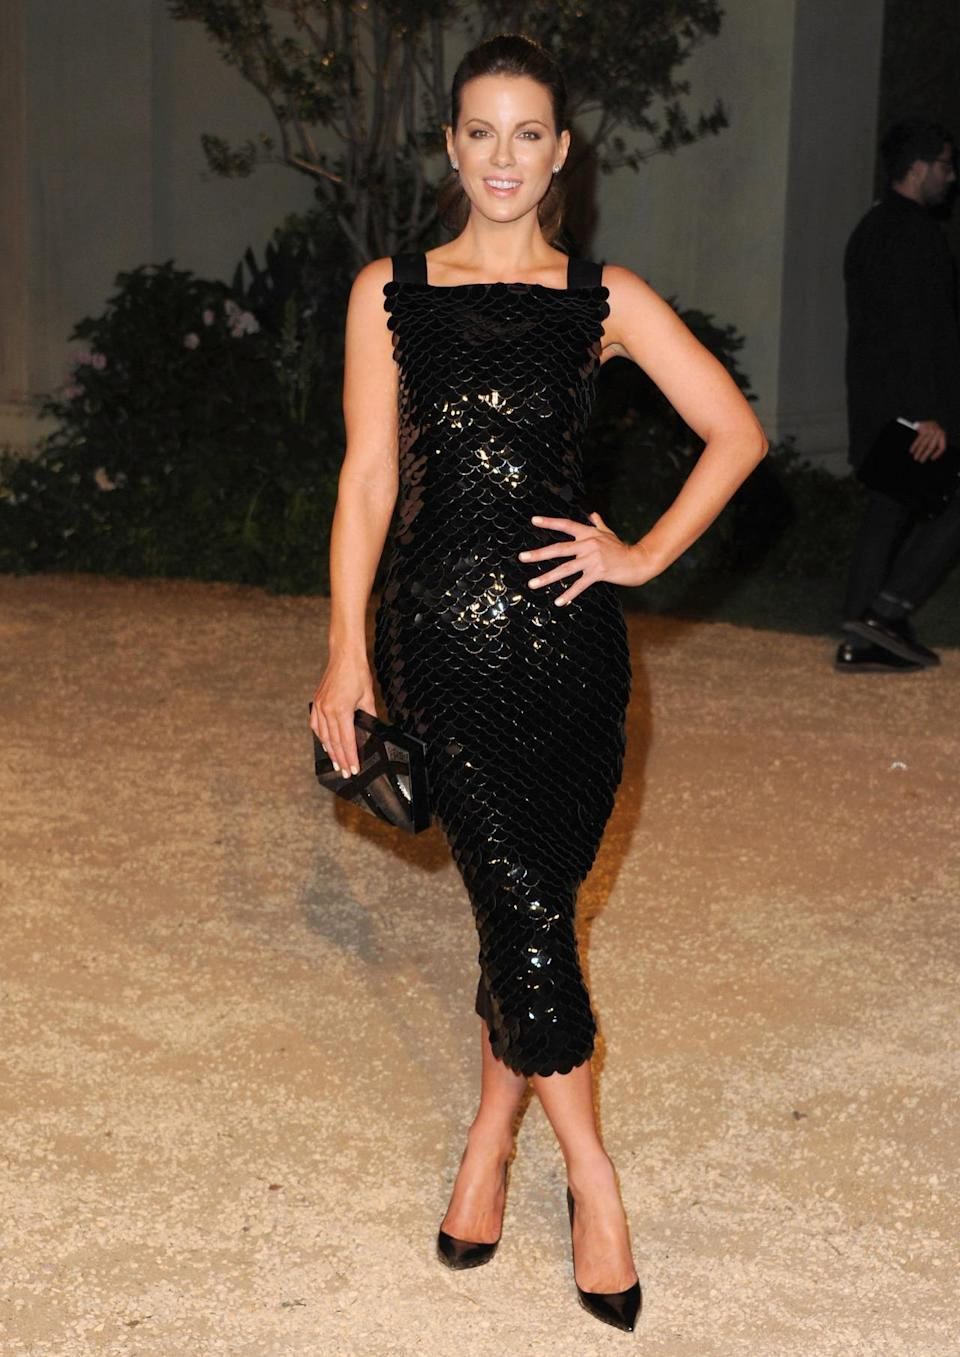 Pailettes covered Kate Beckinsale's black dress adding just a little more shimmer to her already glowing look.